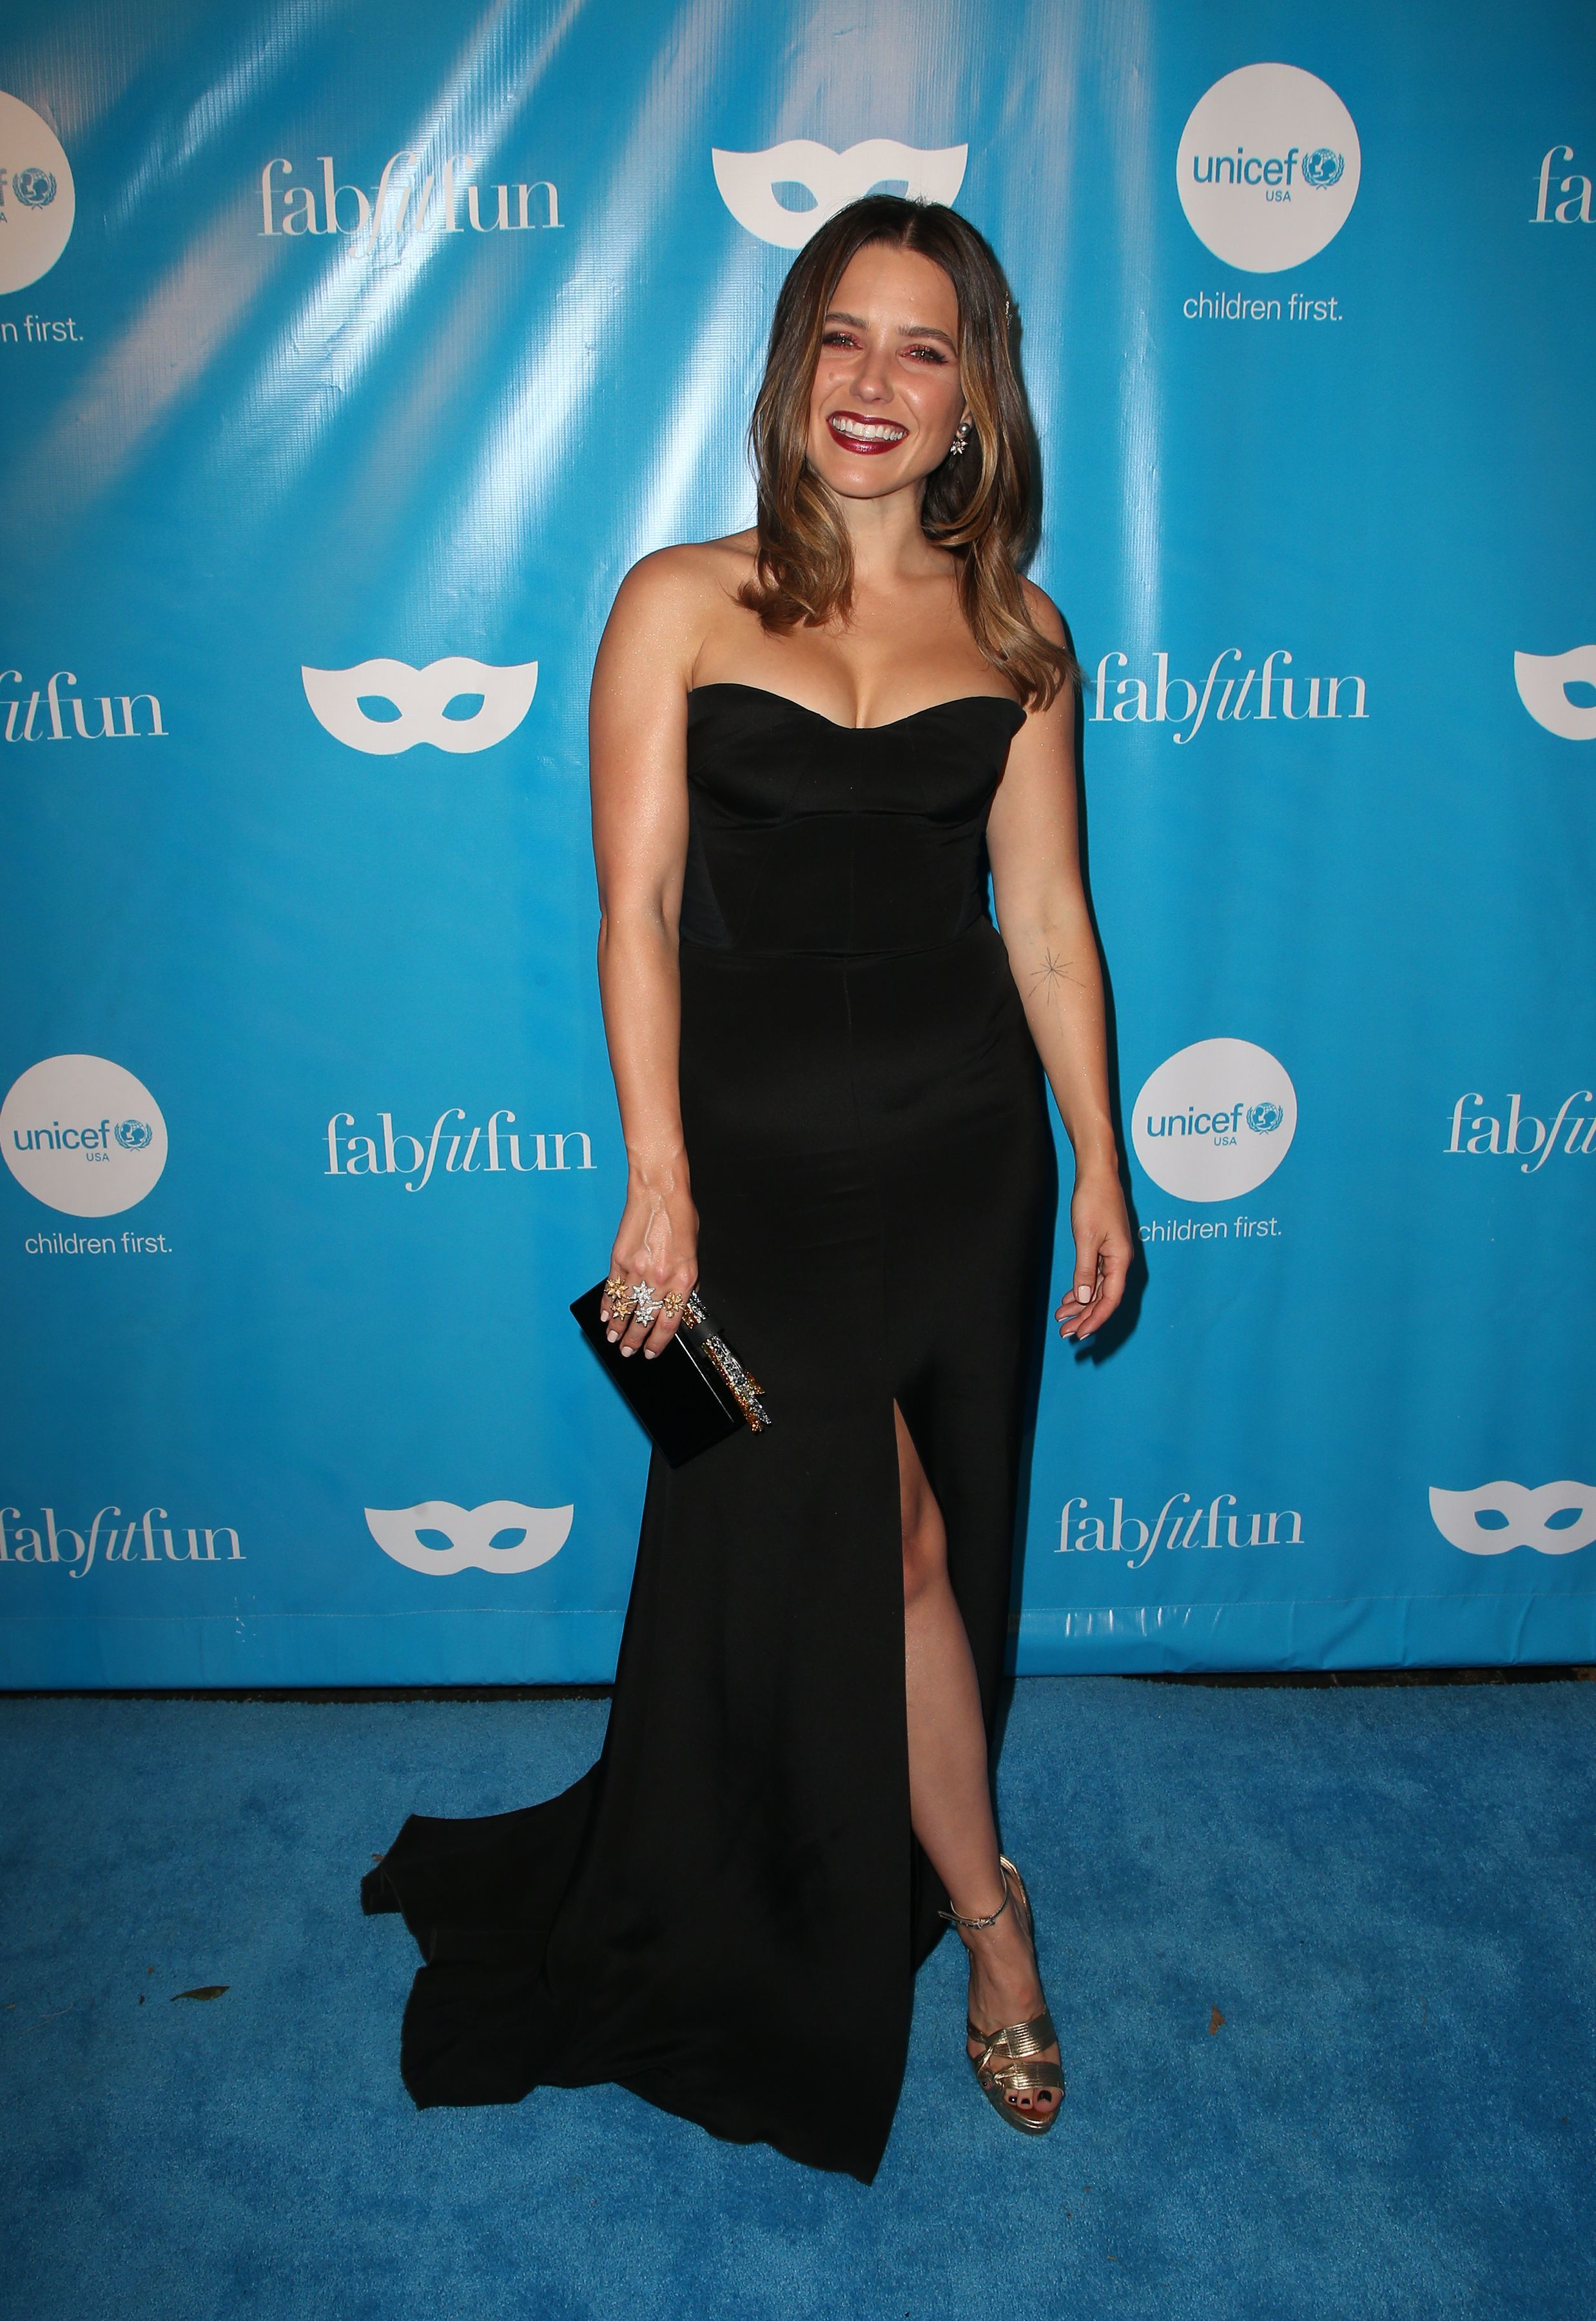 Sophia Bush attends the UNICEF Masquerade Ball in Los Angeles on Oct. 27, 2017.